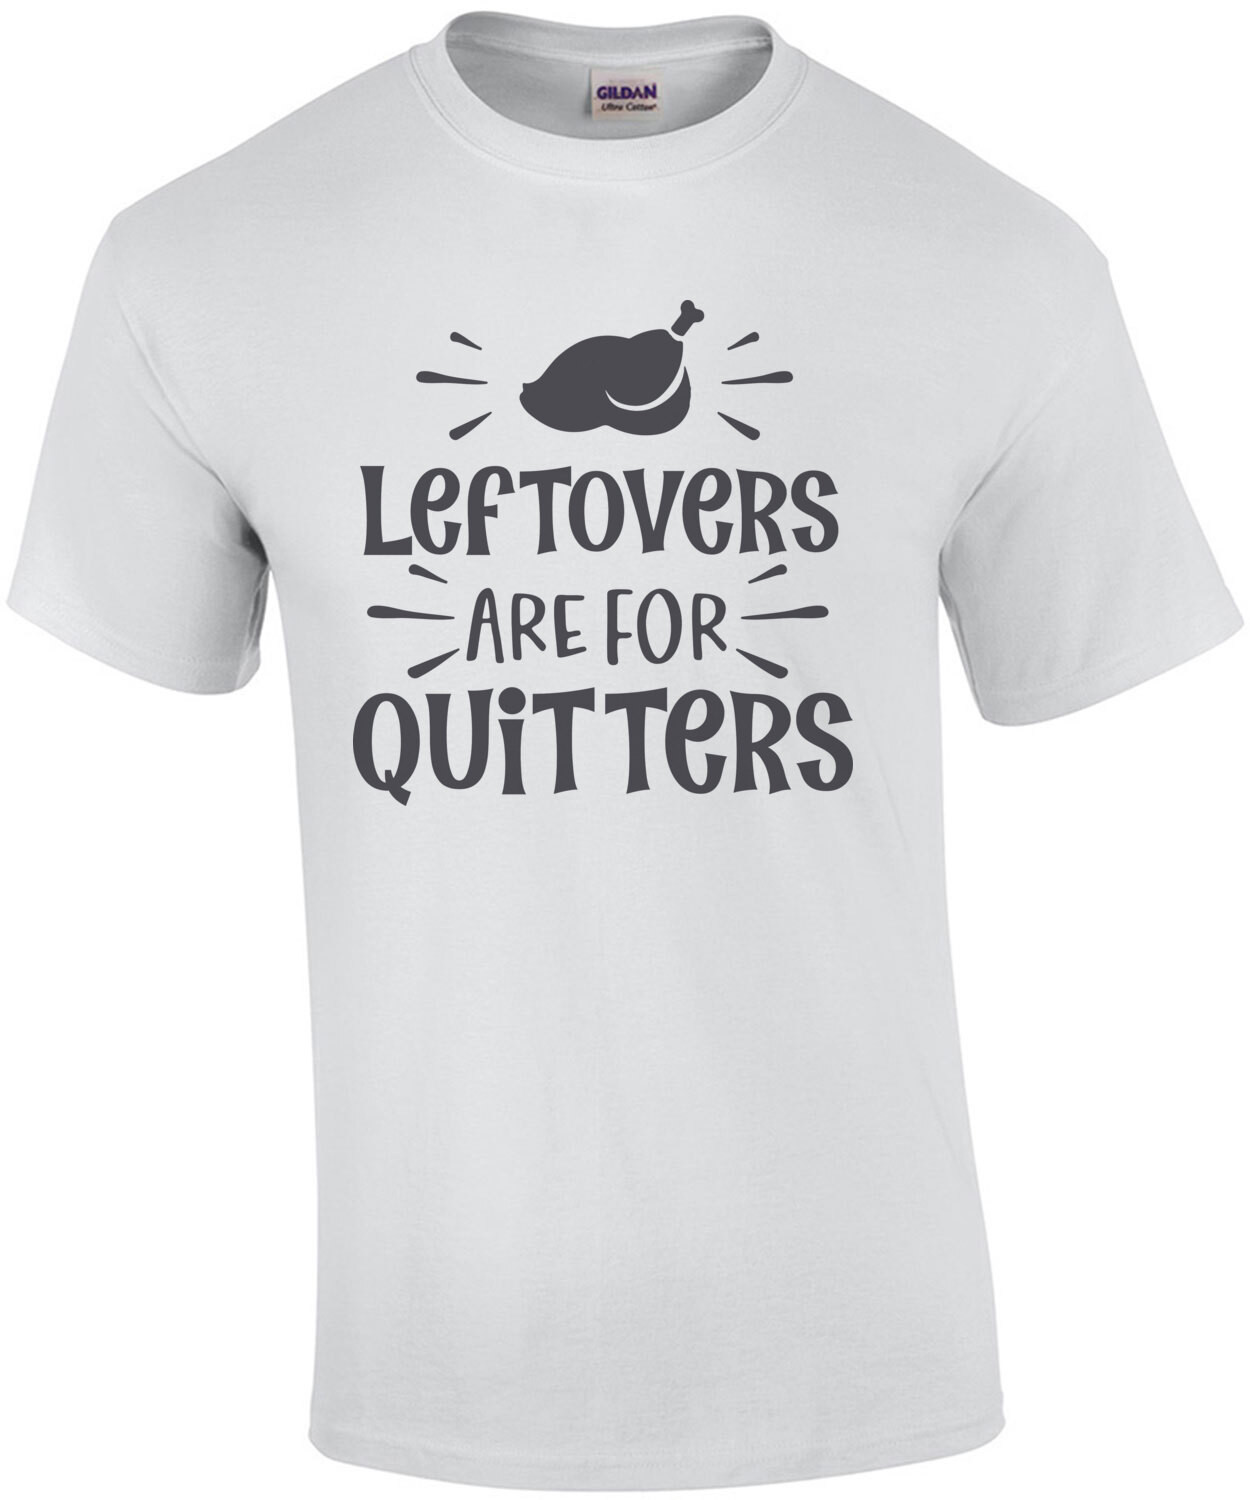 Leftovers Are for Quitters - Thanksgiving Tee